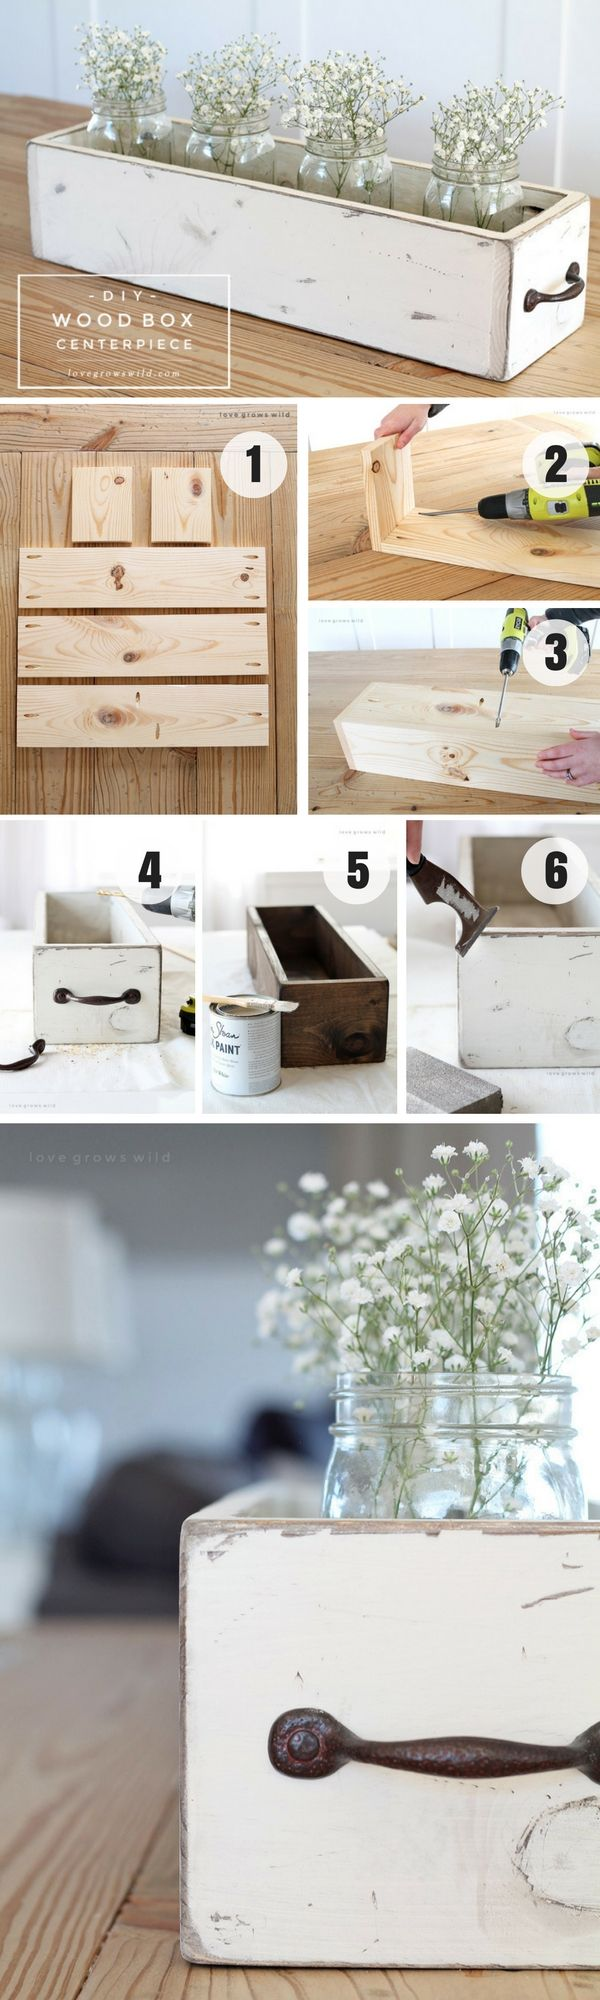 Check out this easy idea on how to build a cheap #DIY #wood box centerpiece #homedecor #rustic #budget @istandarddesign